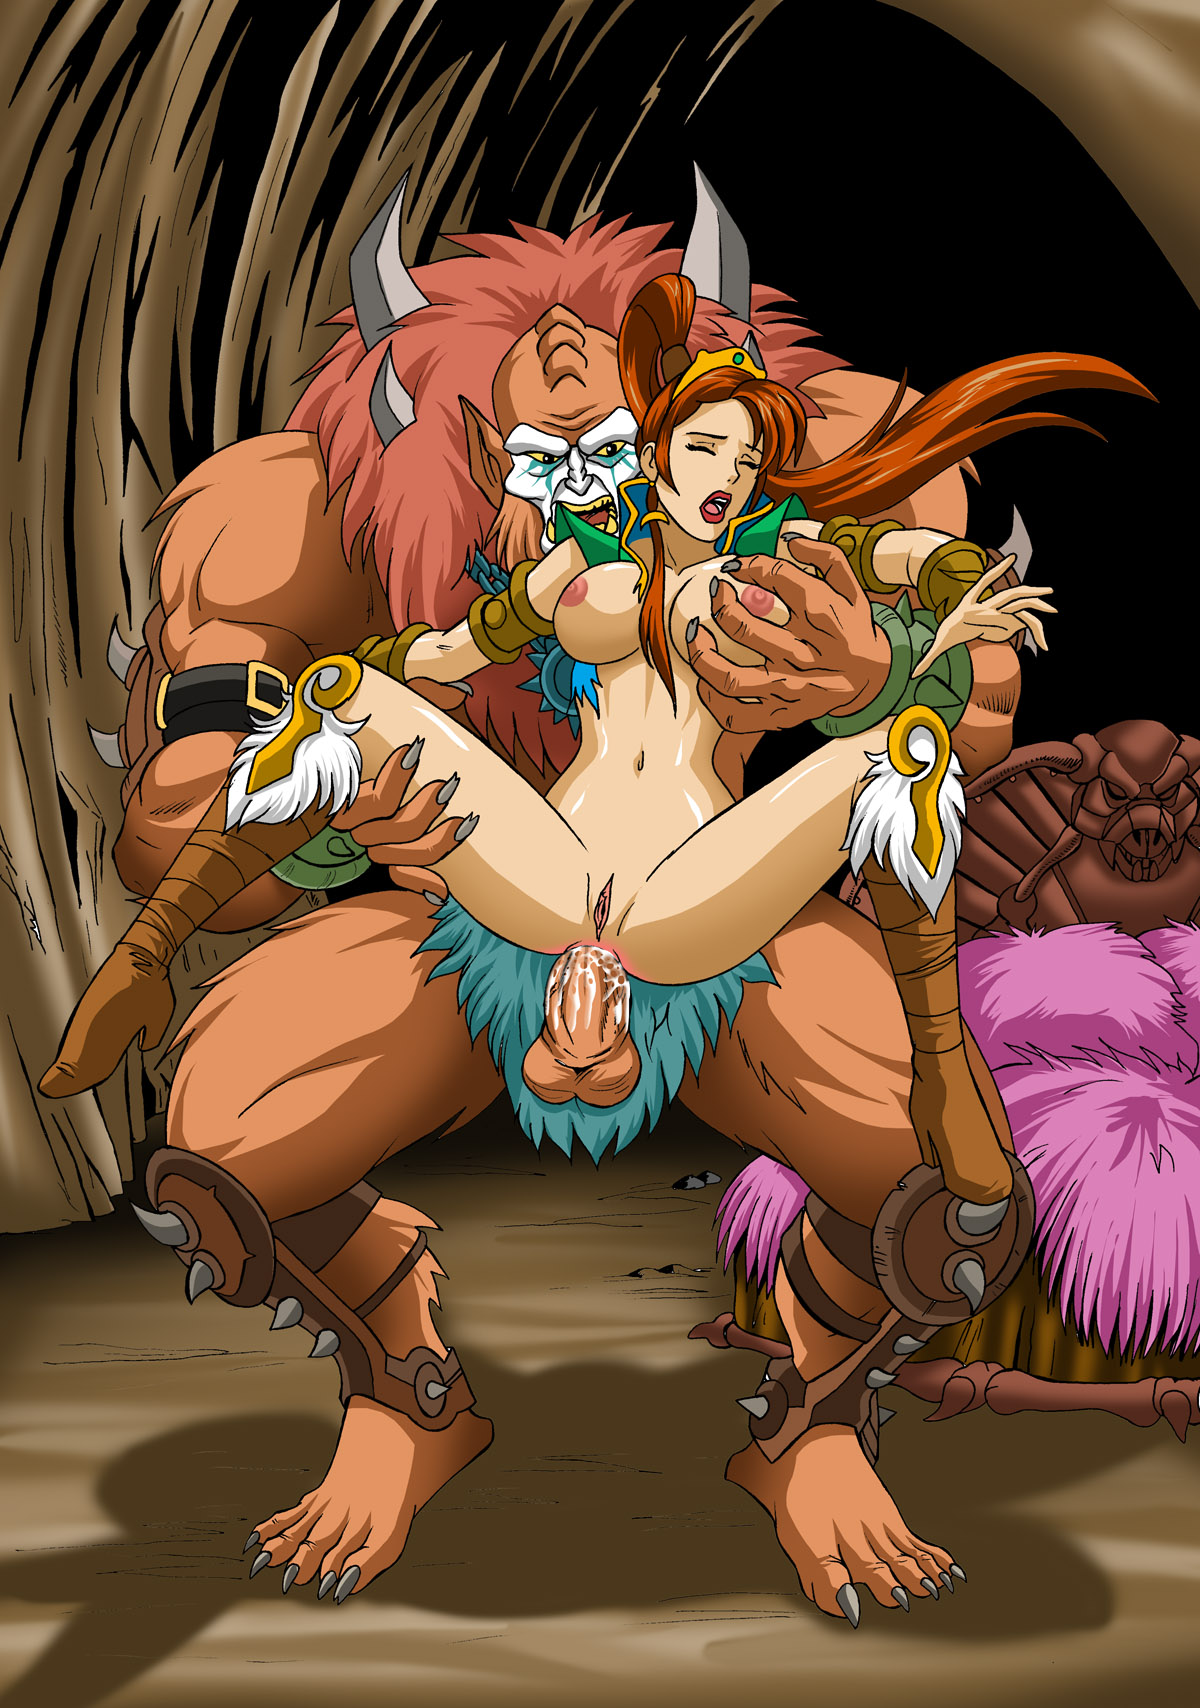 Cartoon porn monster 3gp hentai gallery